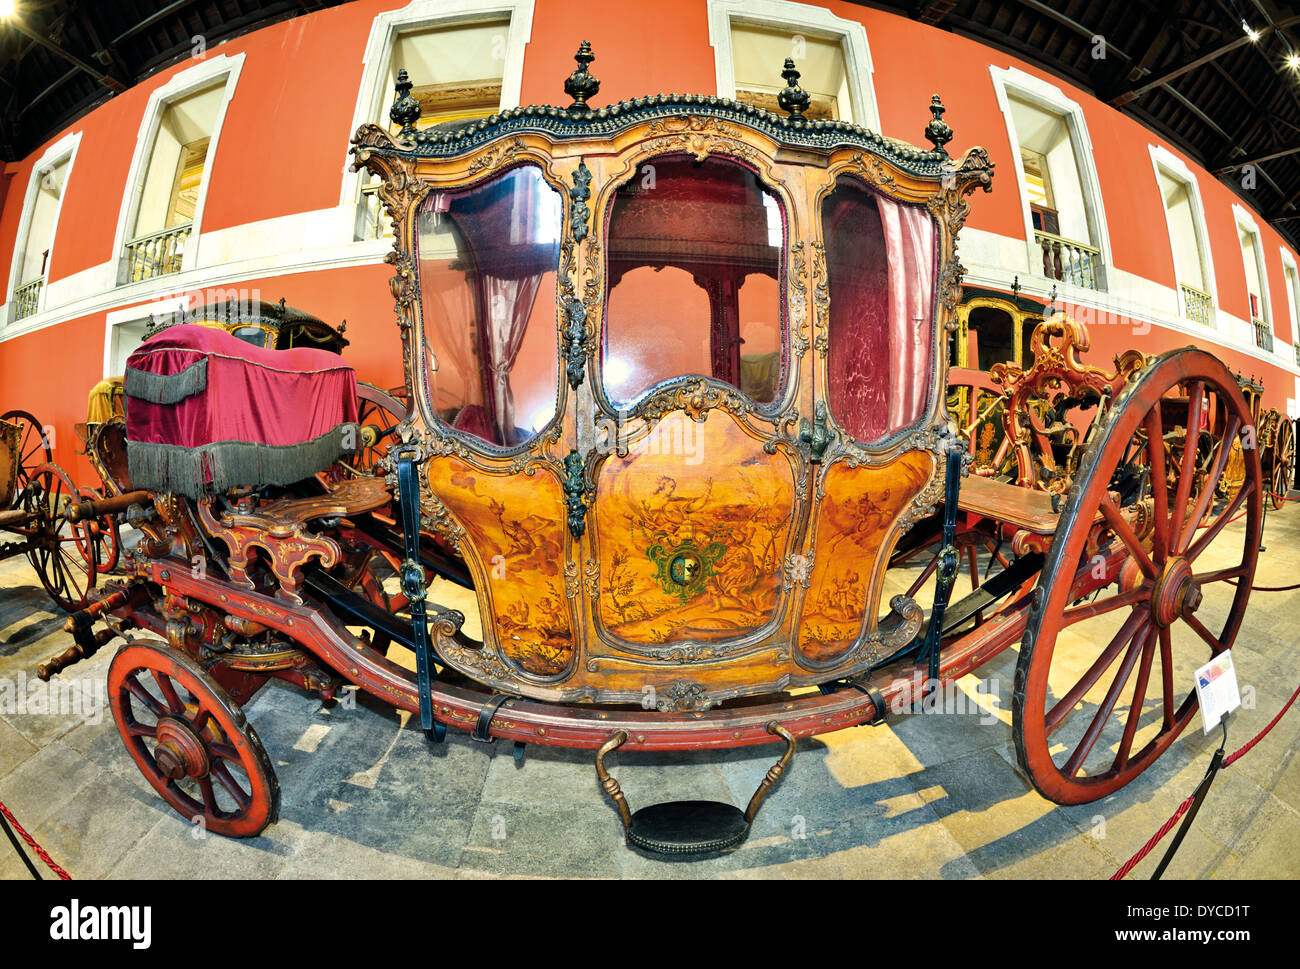 Portugal, Lisbon: Historic carriage 'Berlinda dos Patriarcas' in the Museu dos Coches in Belem - Stock Image